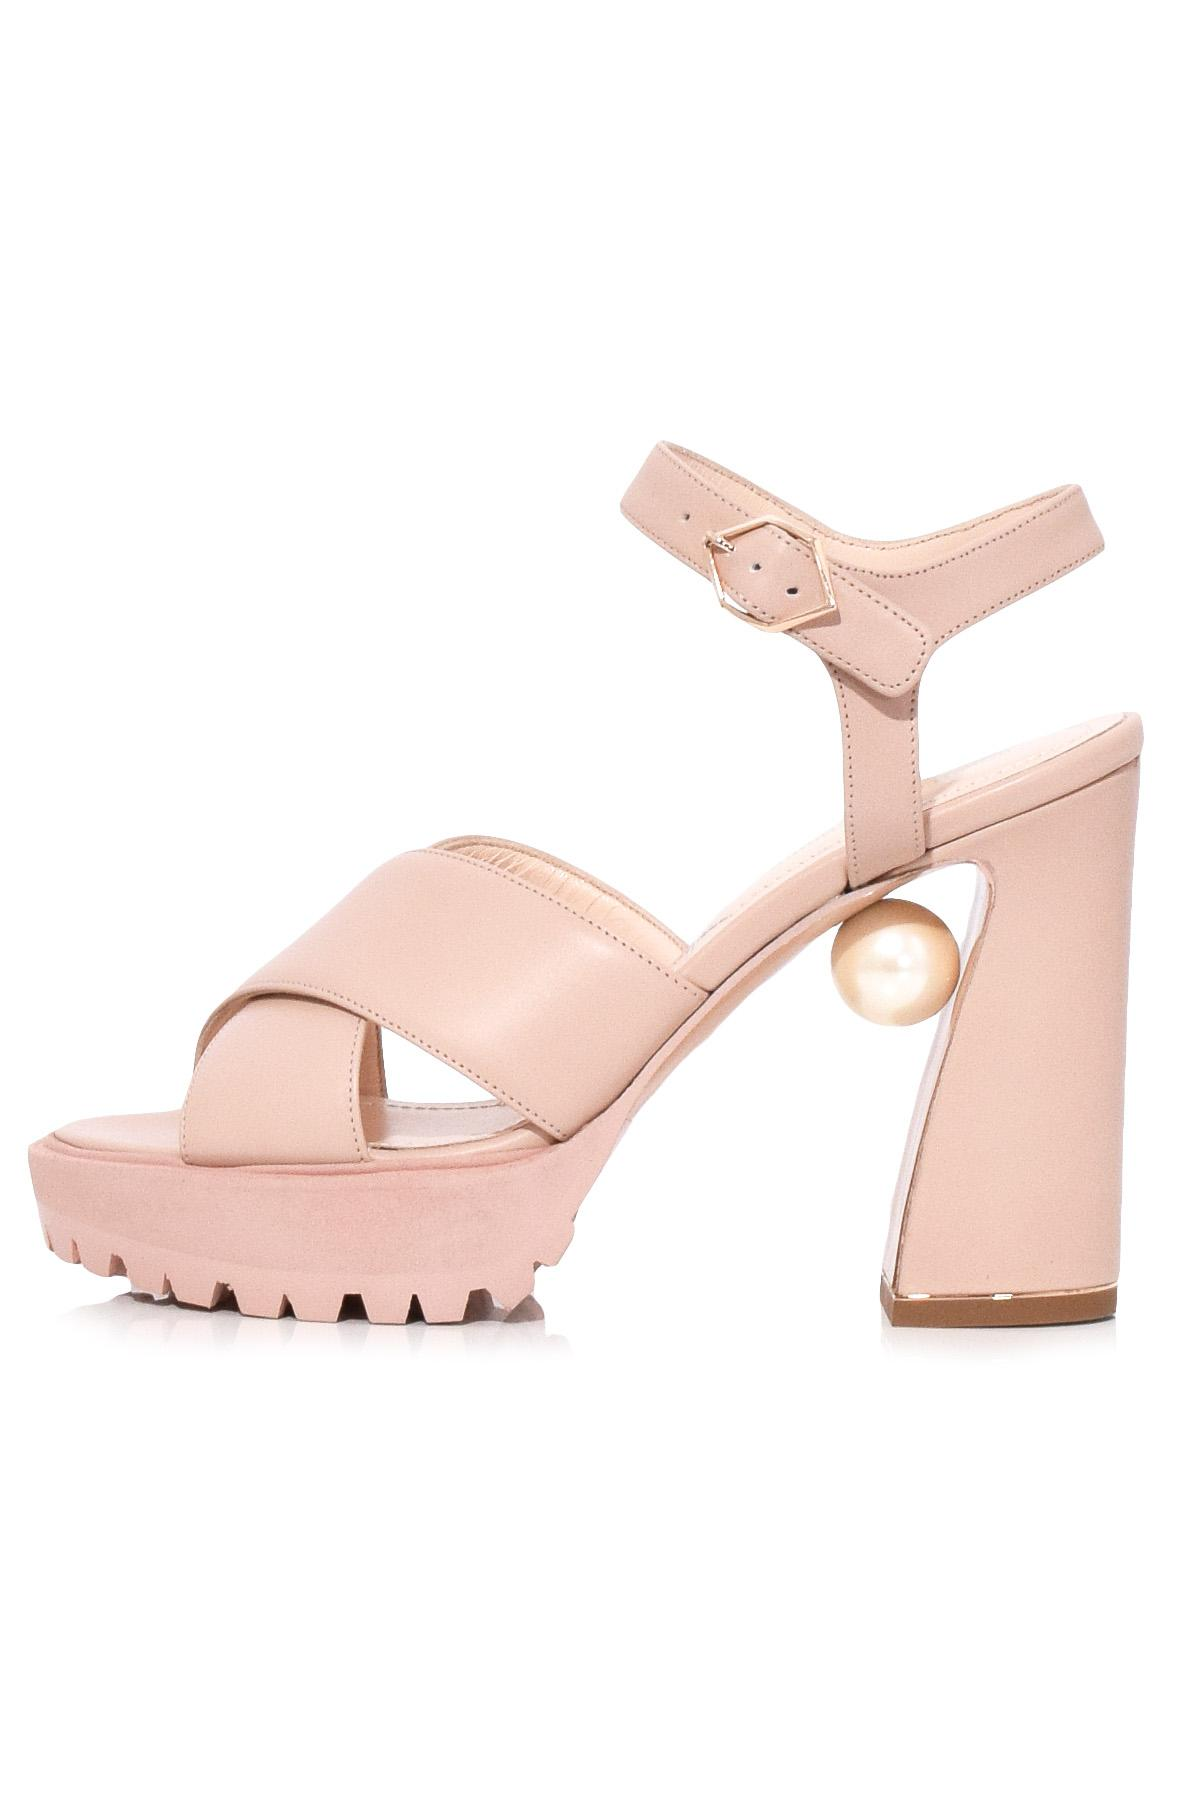 Get Online Annabel Pearl leather sandals Nicholas Kirkwood Cheap Fast Delivery Cheap Sale How Much Extremely Sale Online Cheap How Much T5PqLPCzE